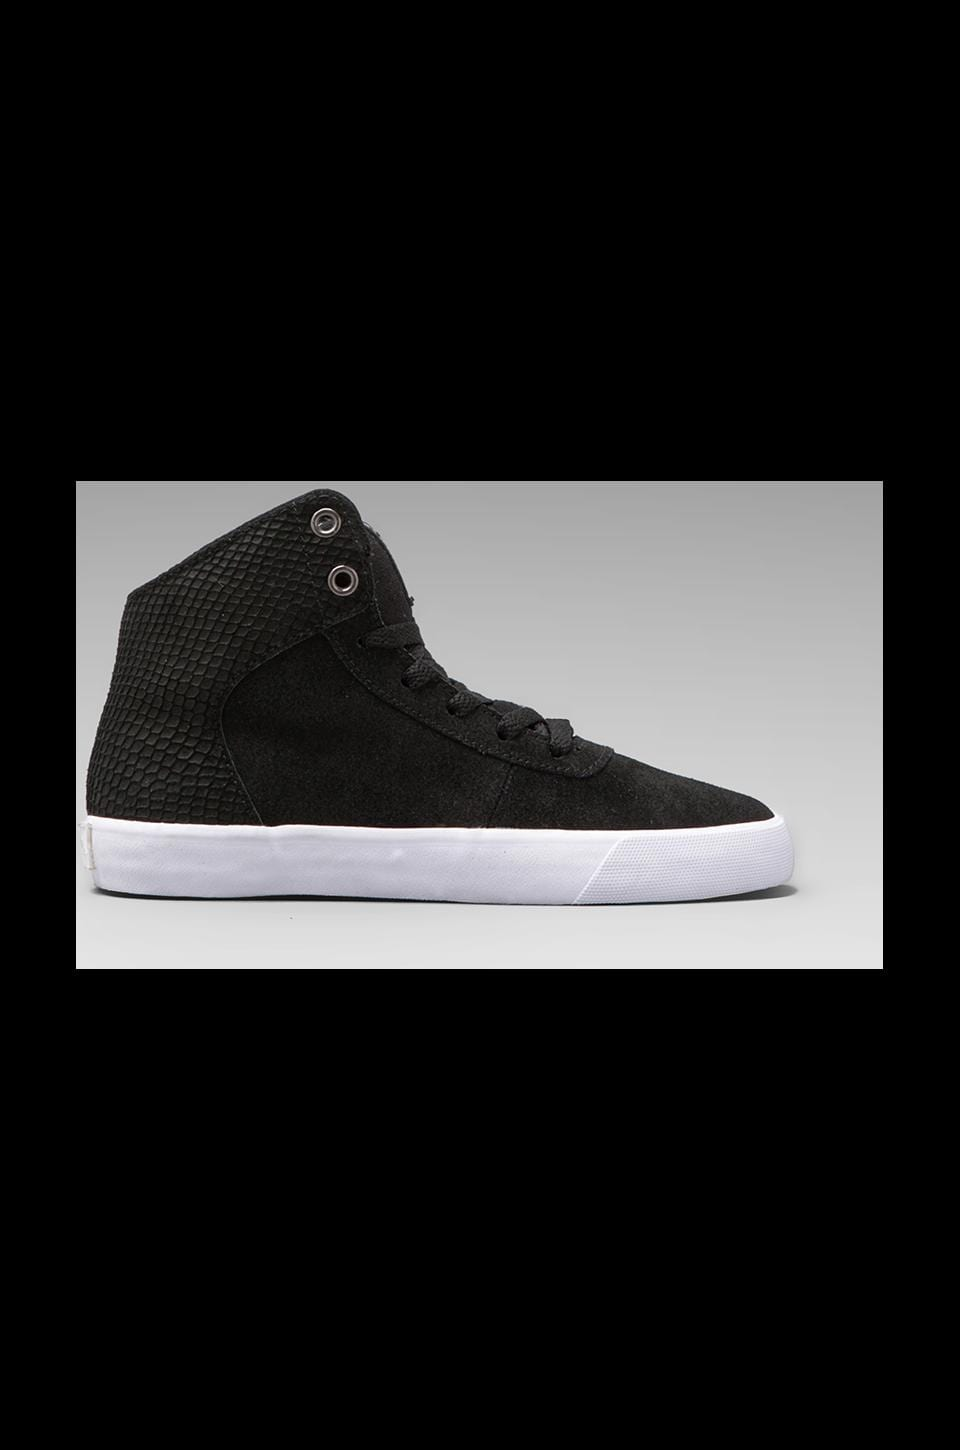 Supra Cuttler Sneaker in Black